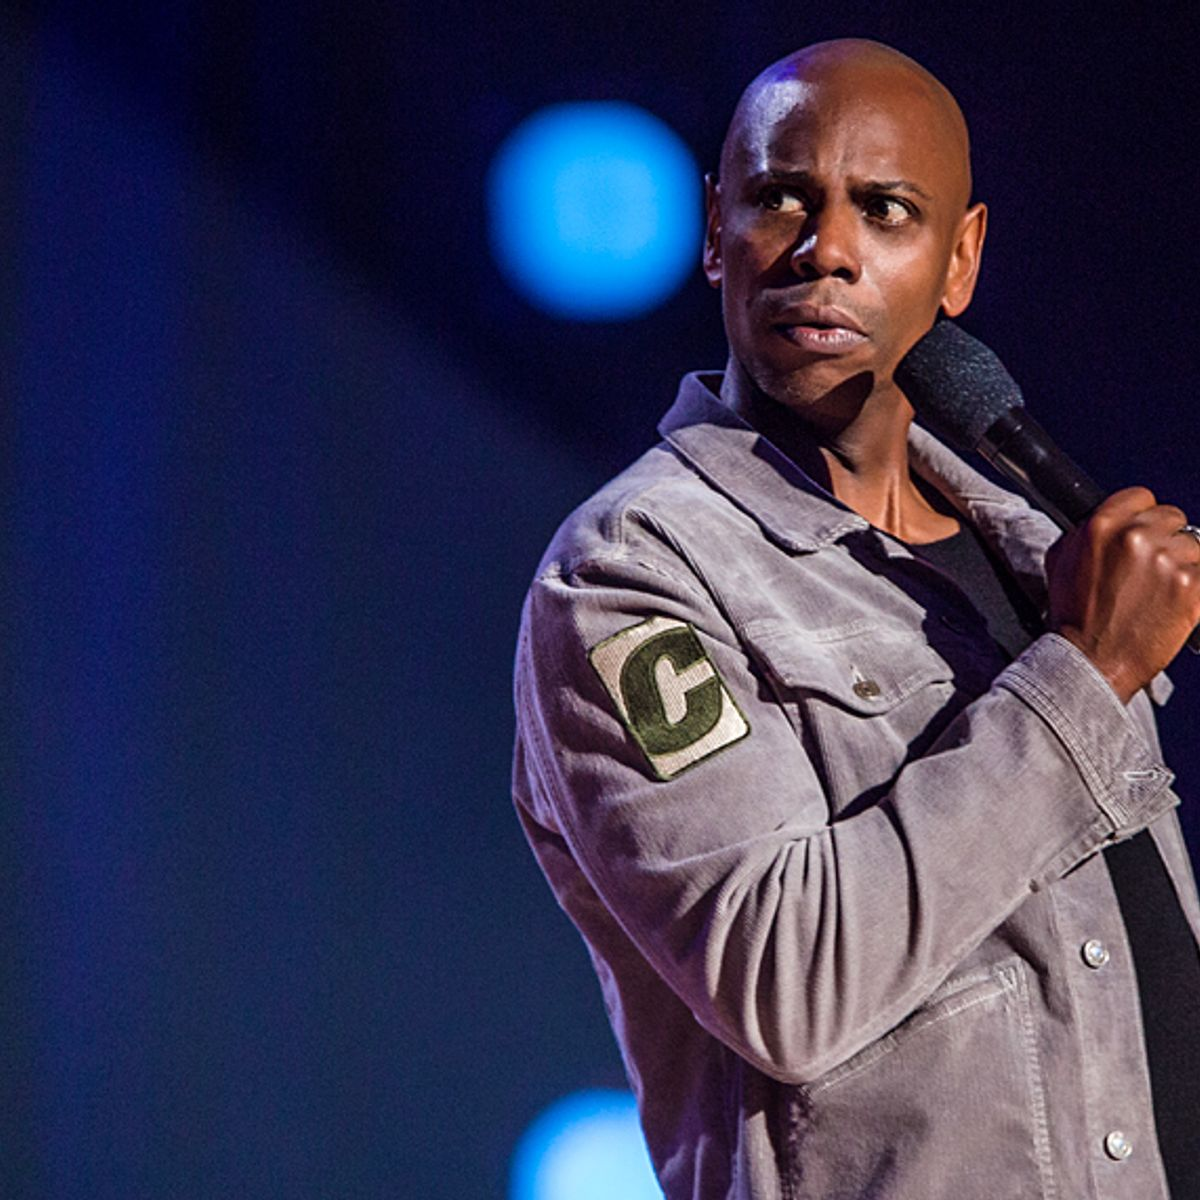 Did Dave Chappelle go too far?